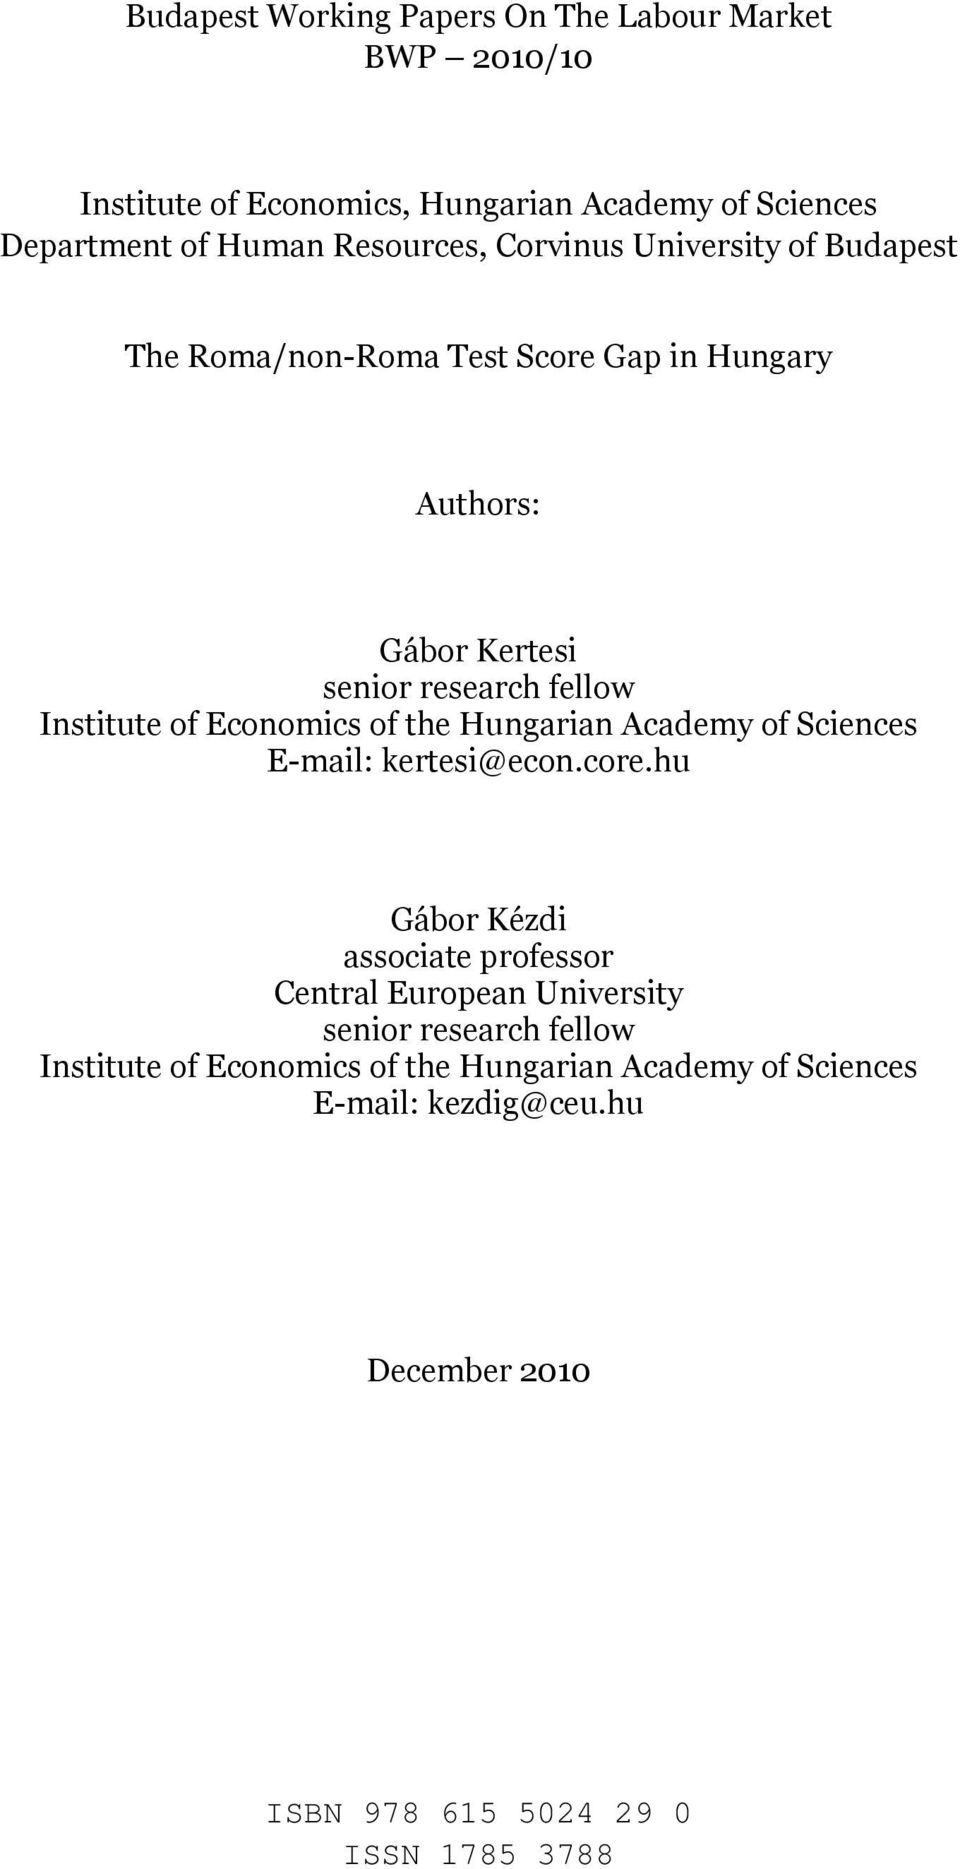 Economics of the Hungarian Academy of Sciences E-mail: kertesi@econ.core.